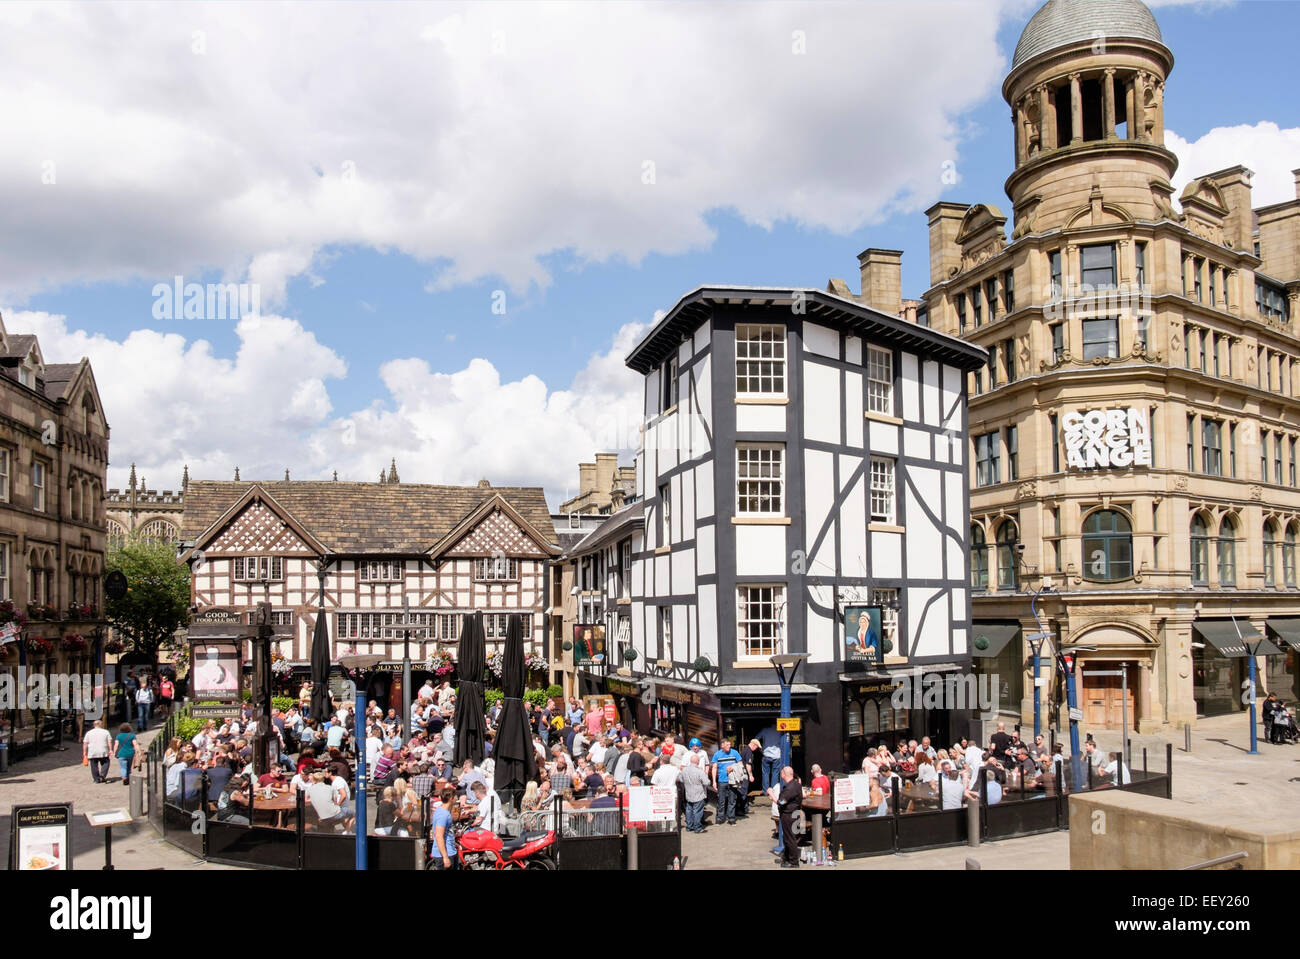 16th century timbered The Old Wellington Inn 1552 timbered building with crowds of people in beer garden. Manchester - Stock Image